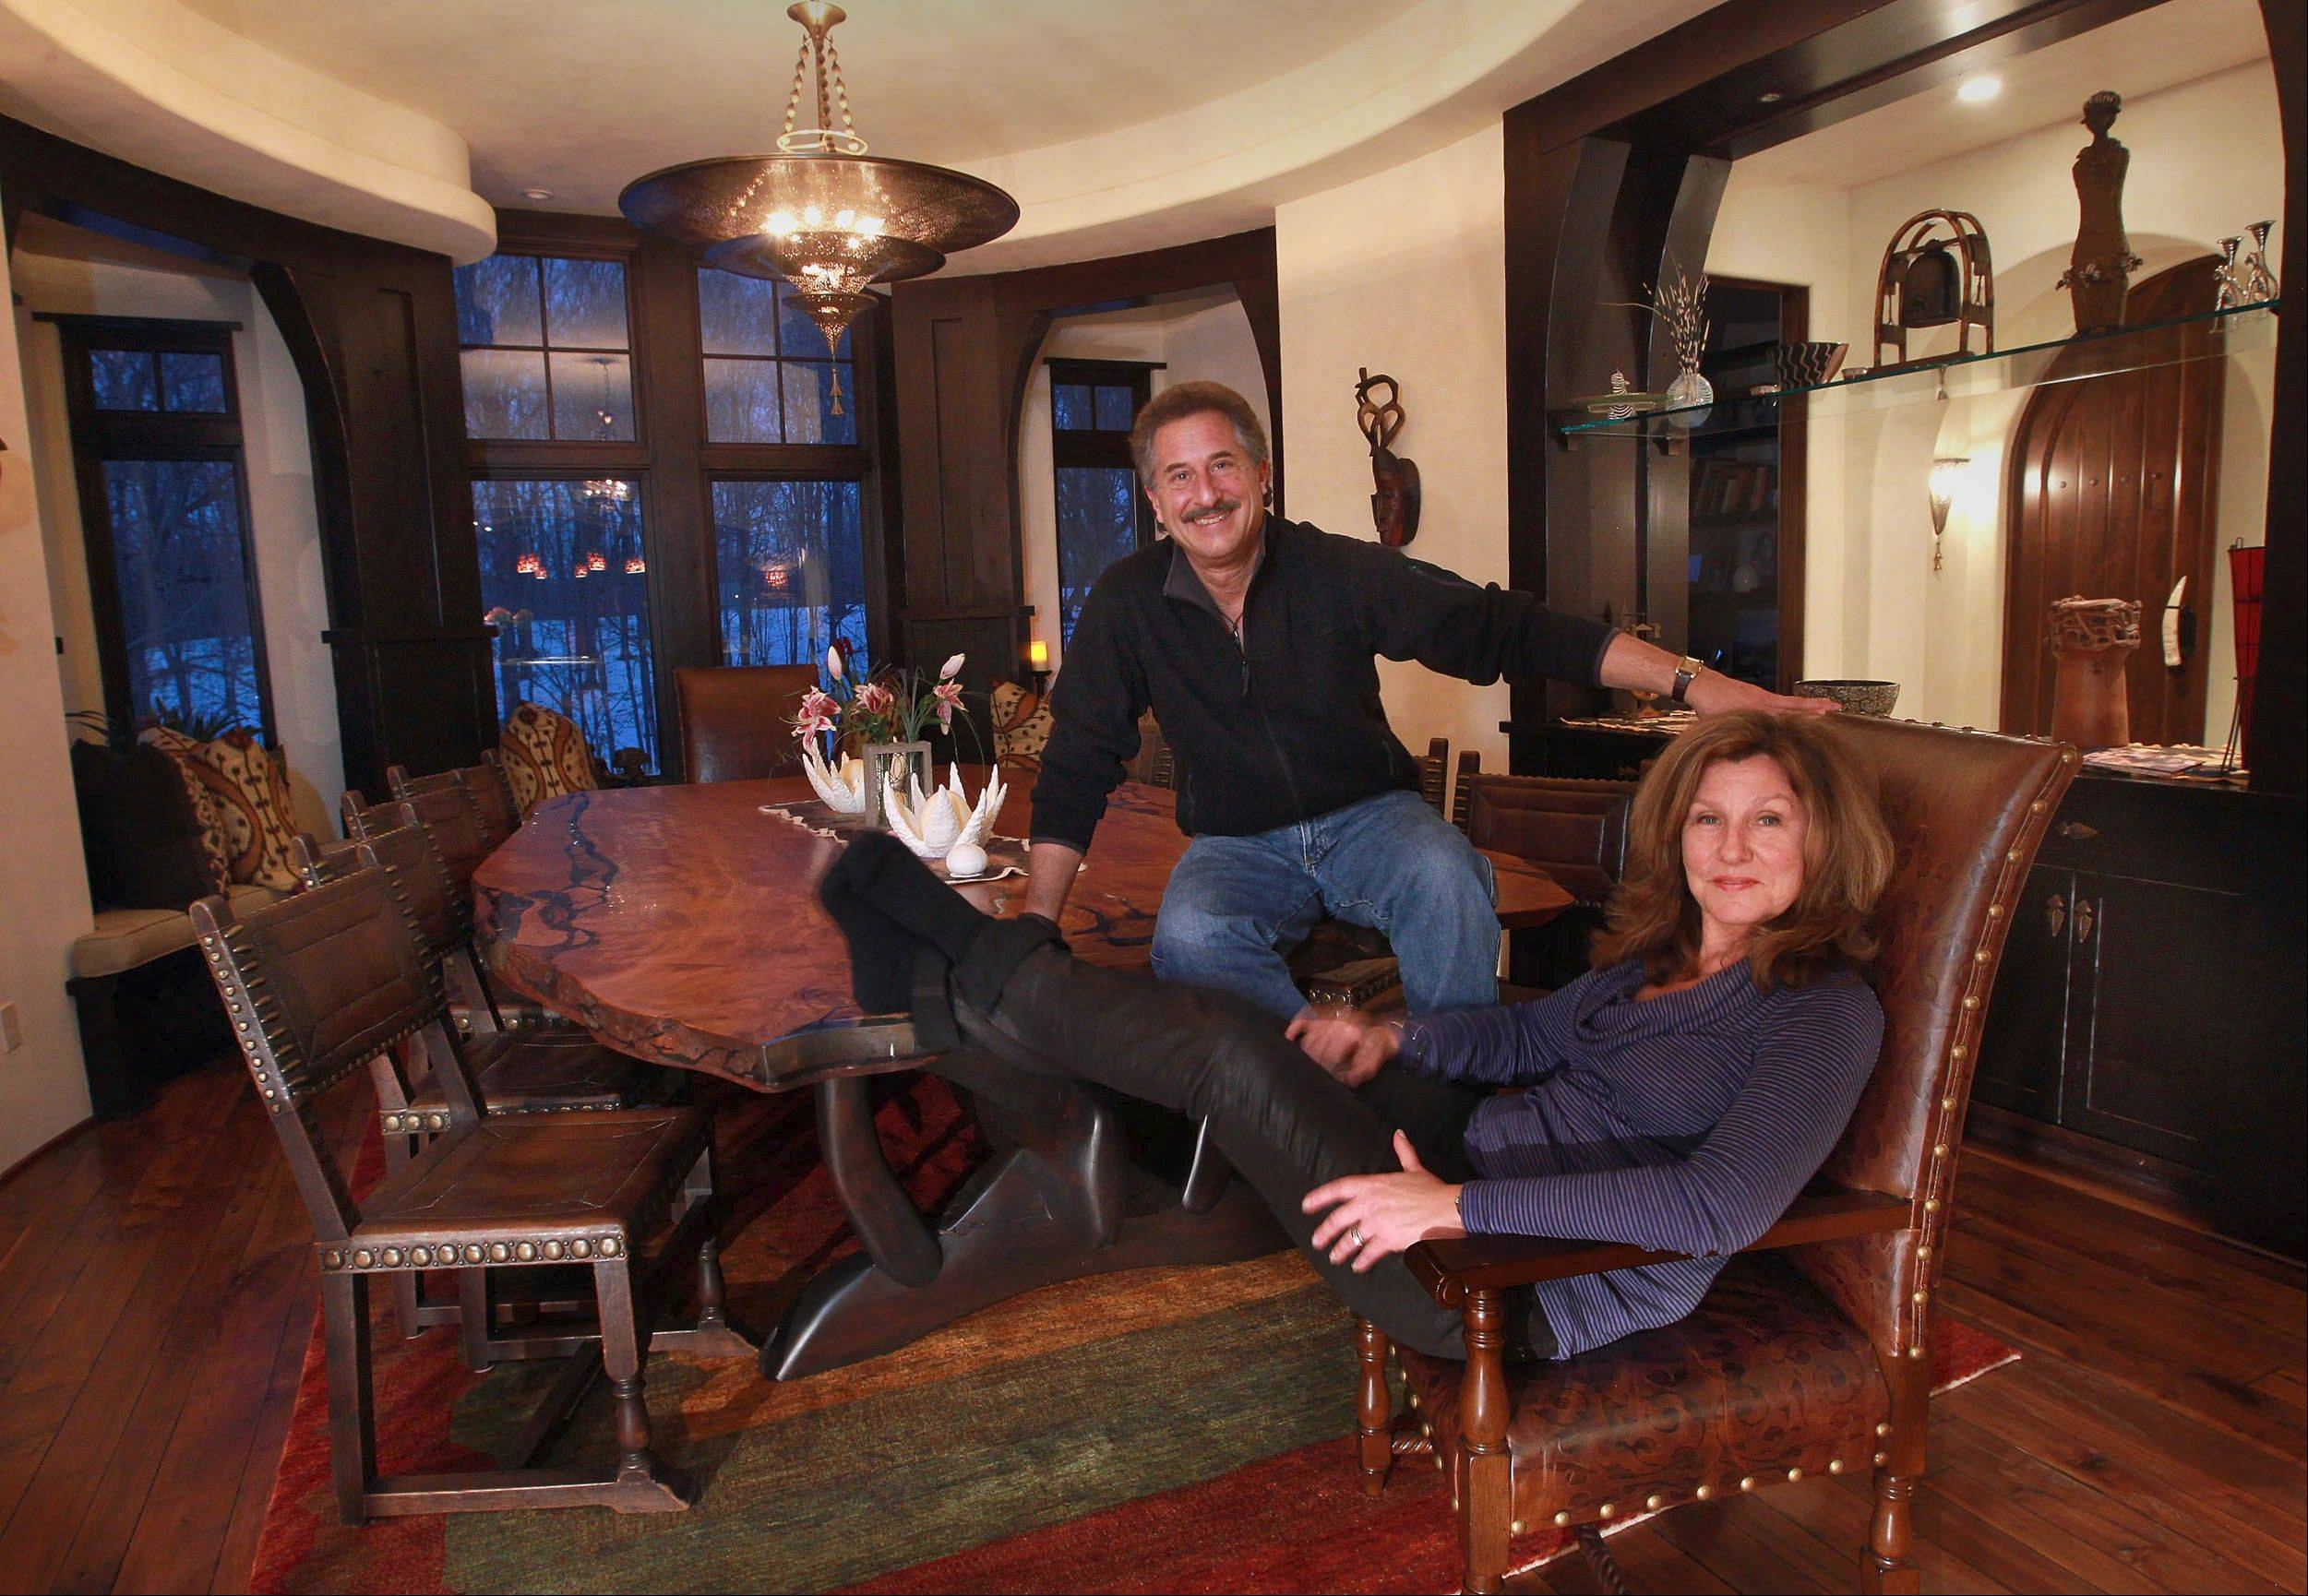 Cass and Andy Stillman, relaxing above in their dining room, built a home with architectural details inspired by their love of Africa.